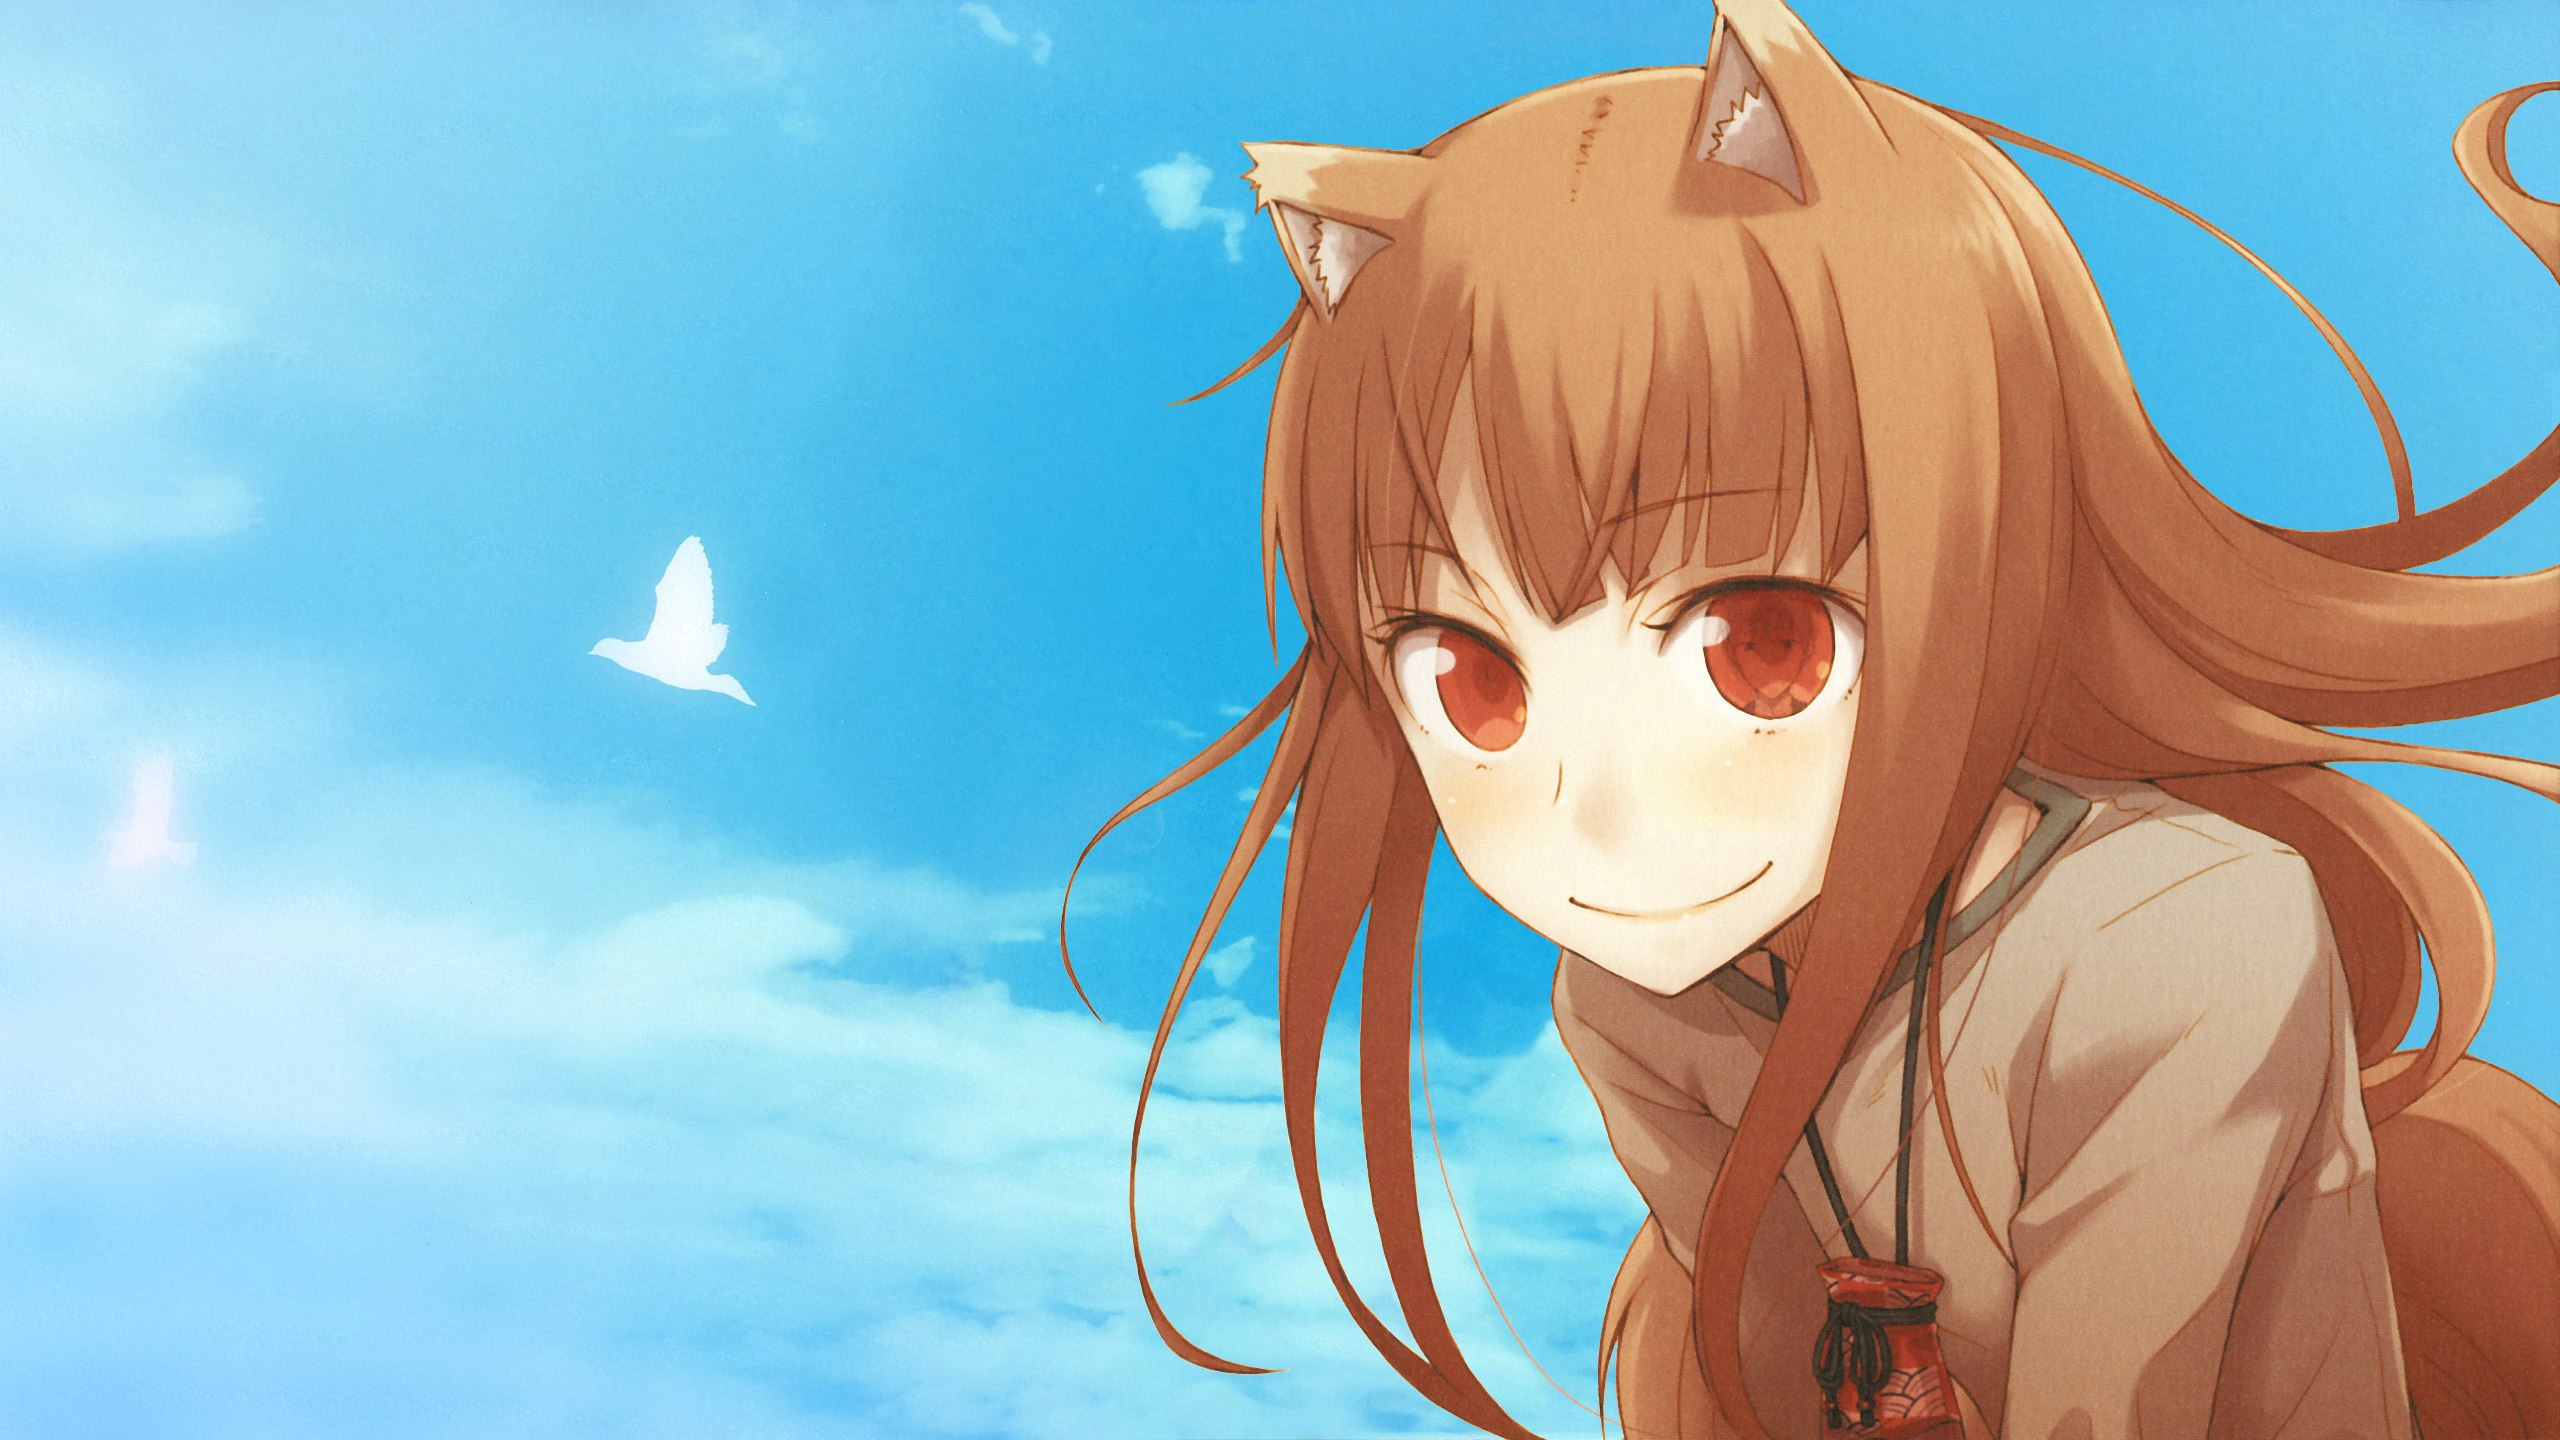 Spice and Wolf Res: 2560x1440 / Size:509kb. Views: 13488